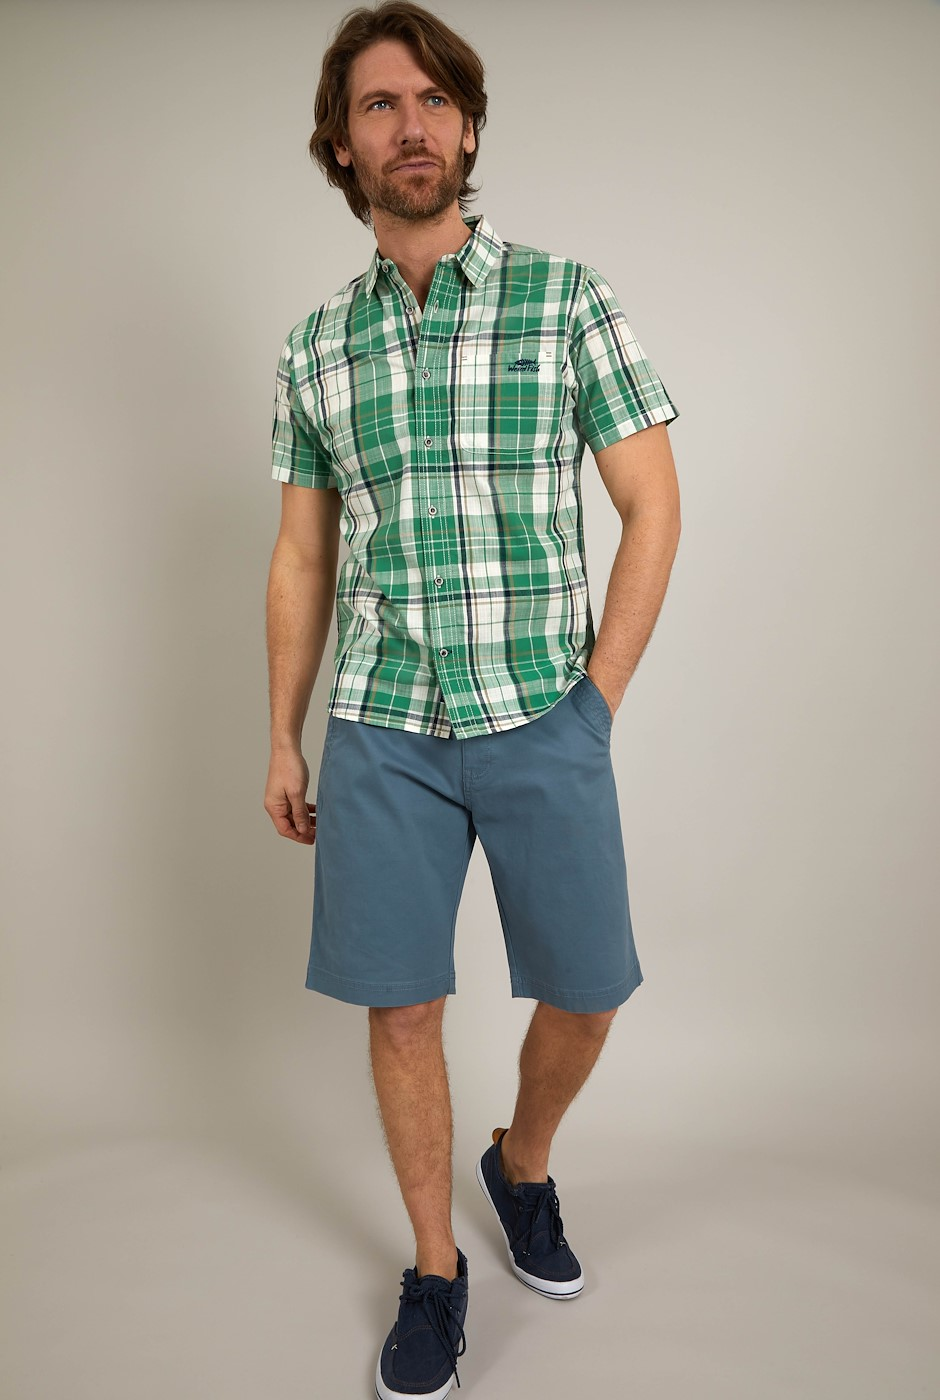 Ennis Short Sleeve Check Shirt Frosty Spruce